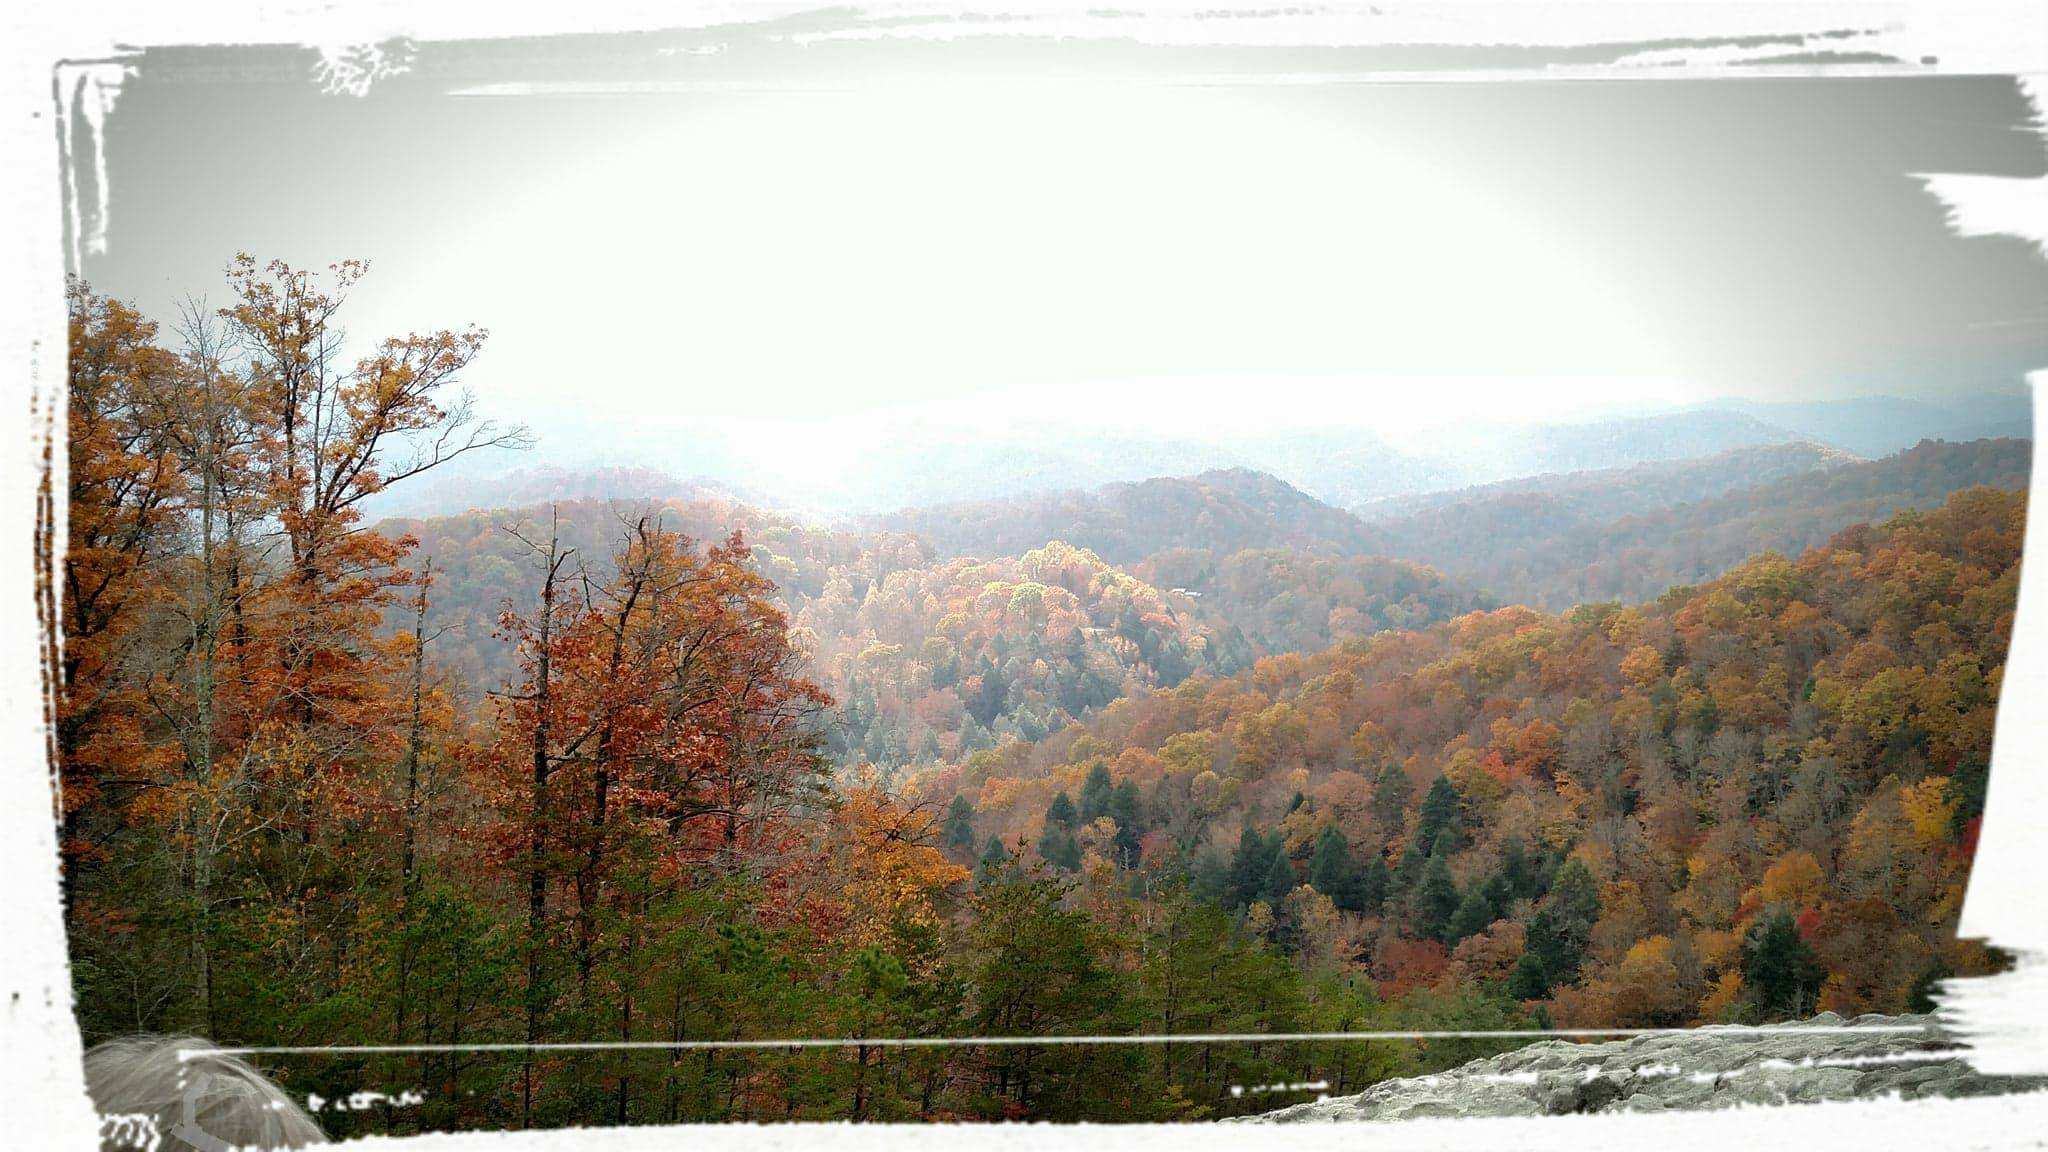 Sun breaking through clouds at Blanton Forest, Pine Mountain, Ky. Photo credit: Leah D. Schade. All rights reserved.